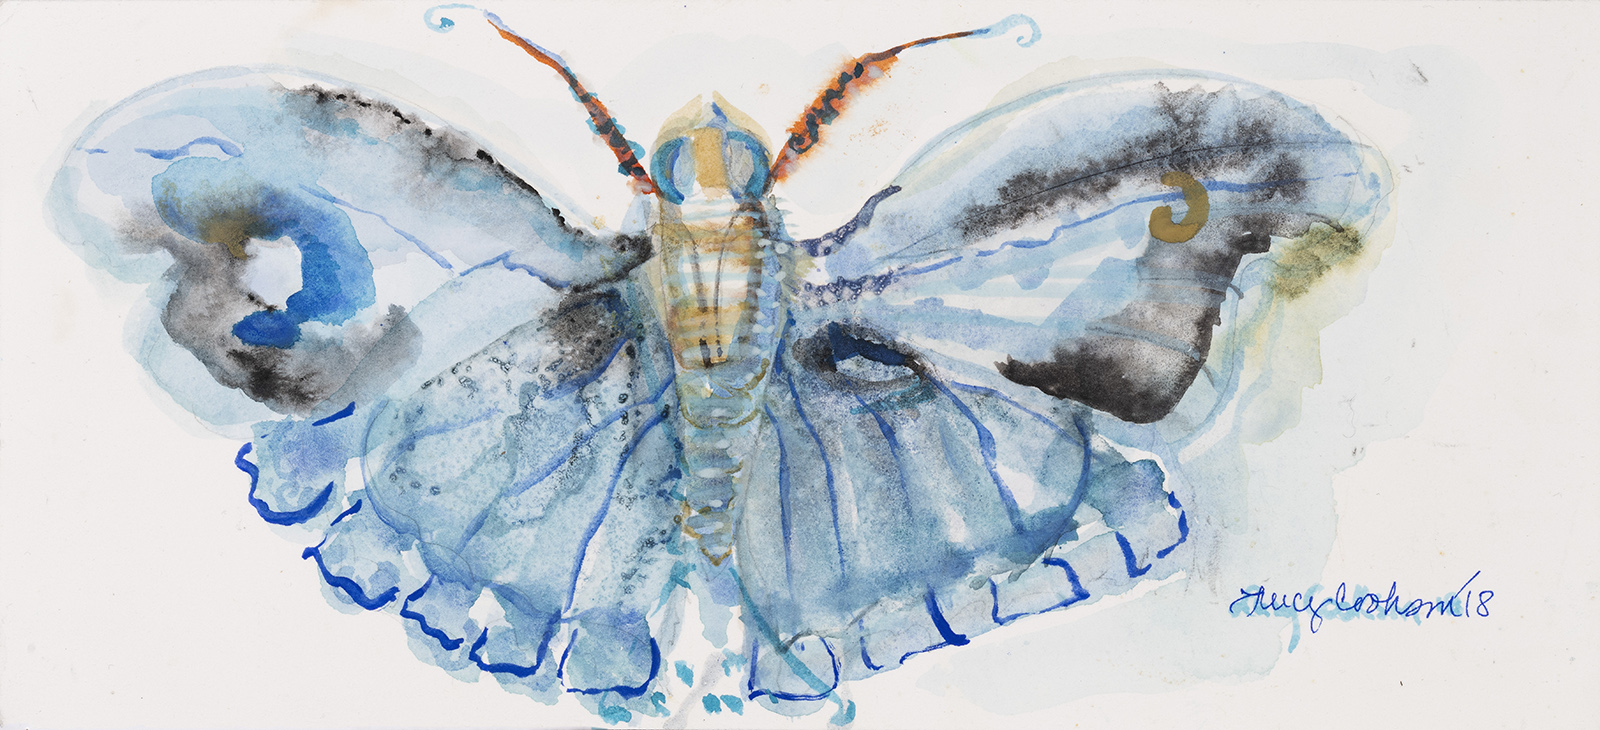 Blue Moth, 2018, Watercolor on paper, 4 x 10 in.